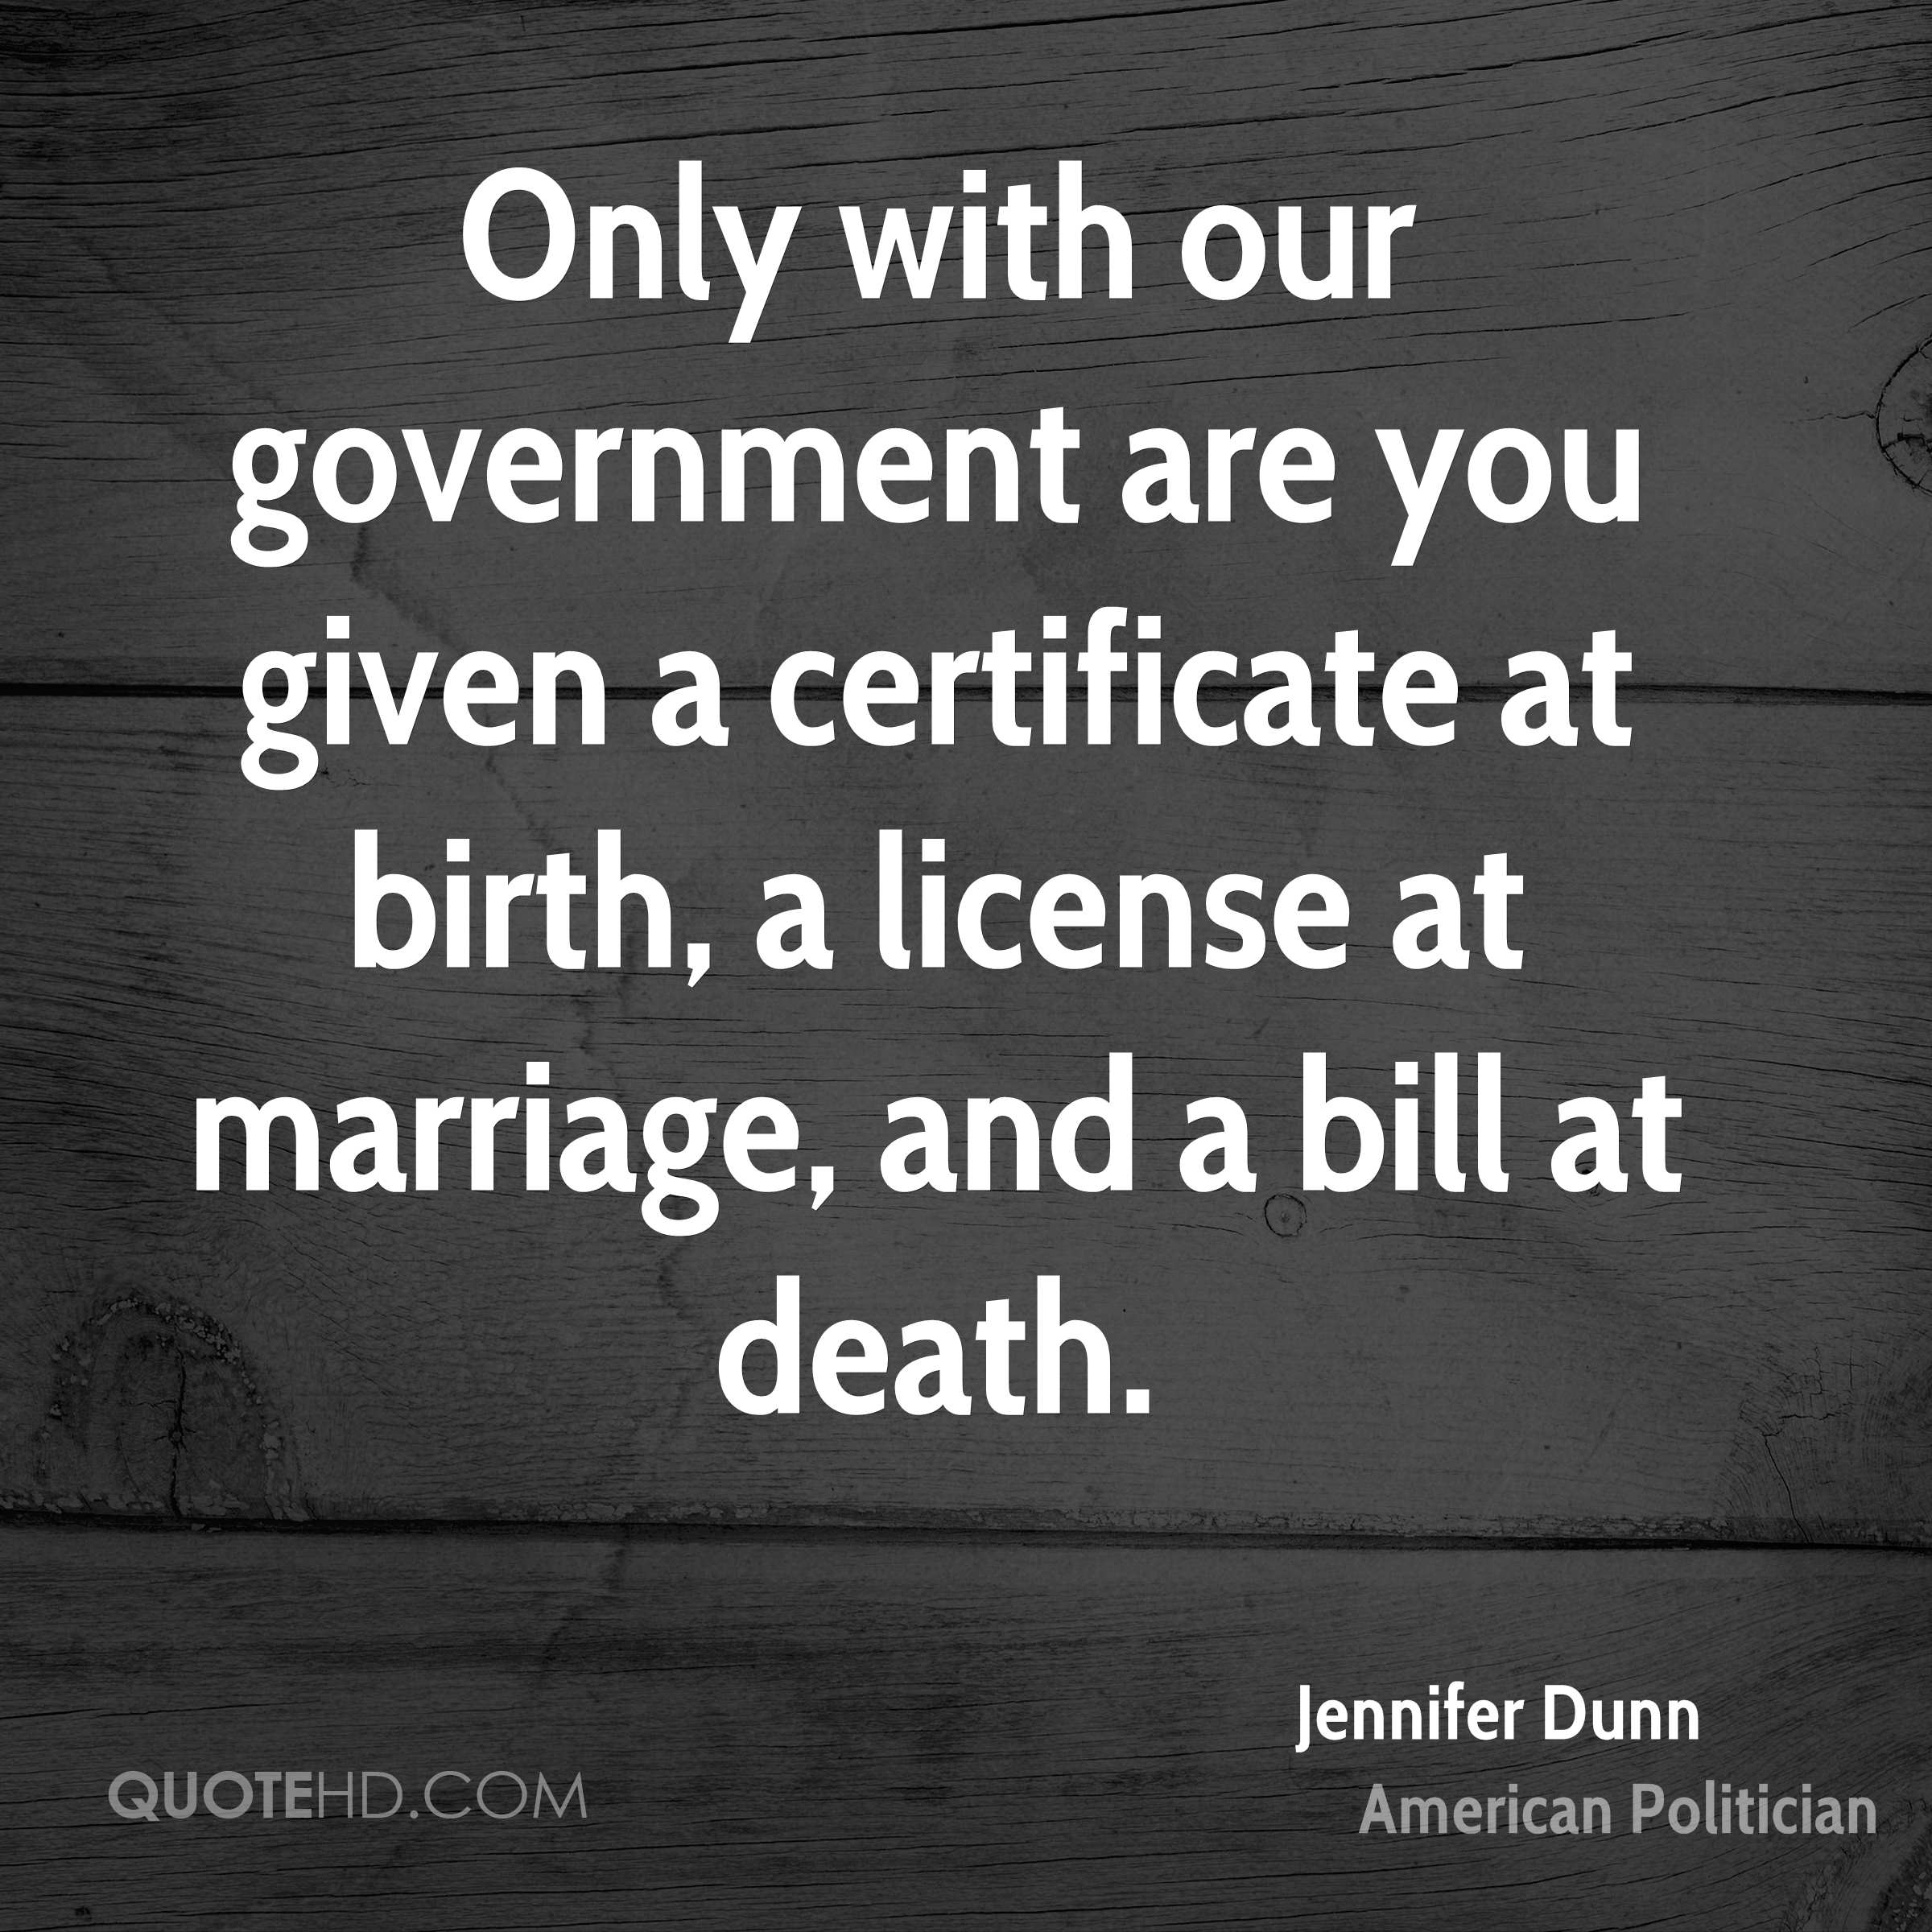 Only with our government are you given a certificate at birth, a license at marriage, and a bill at death.